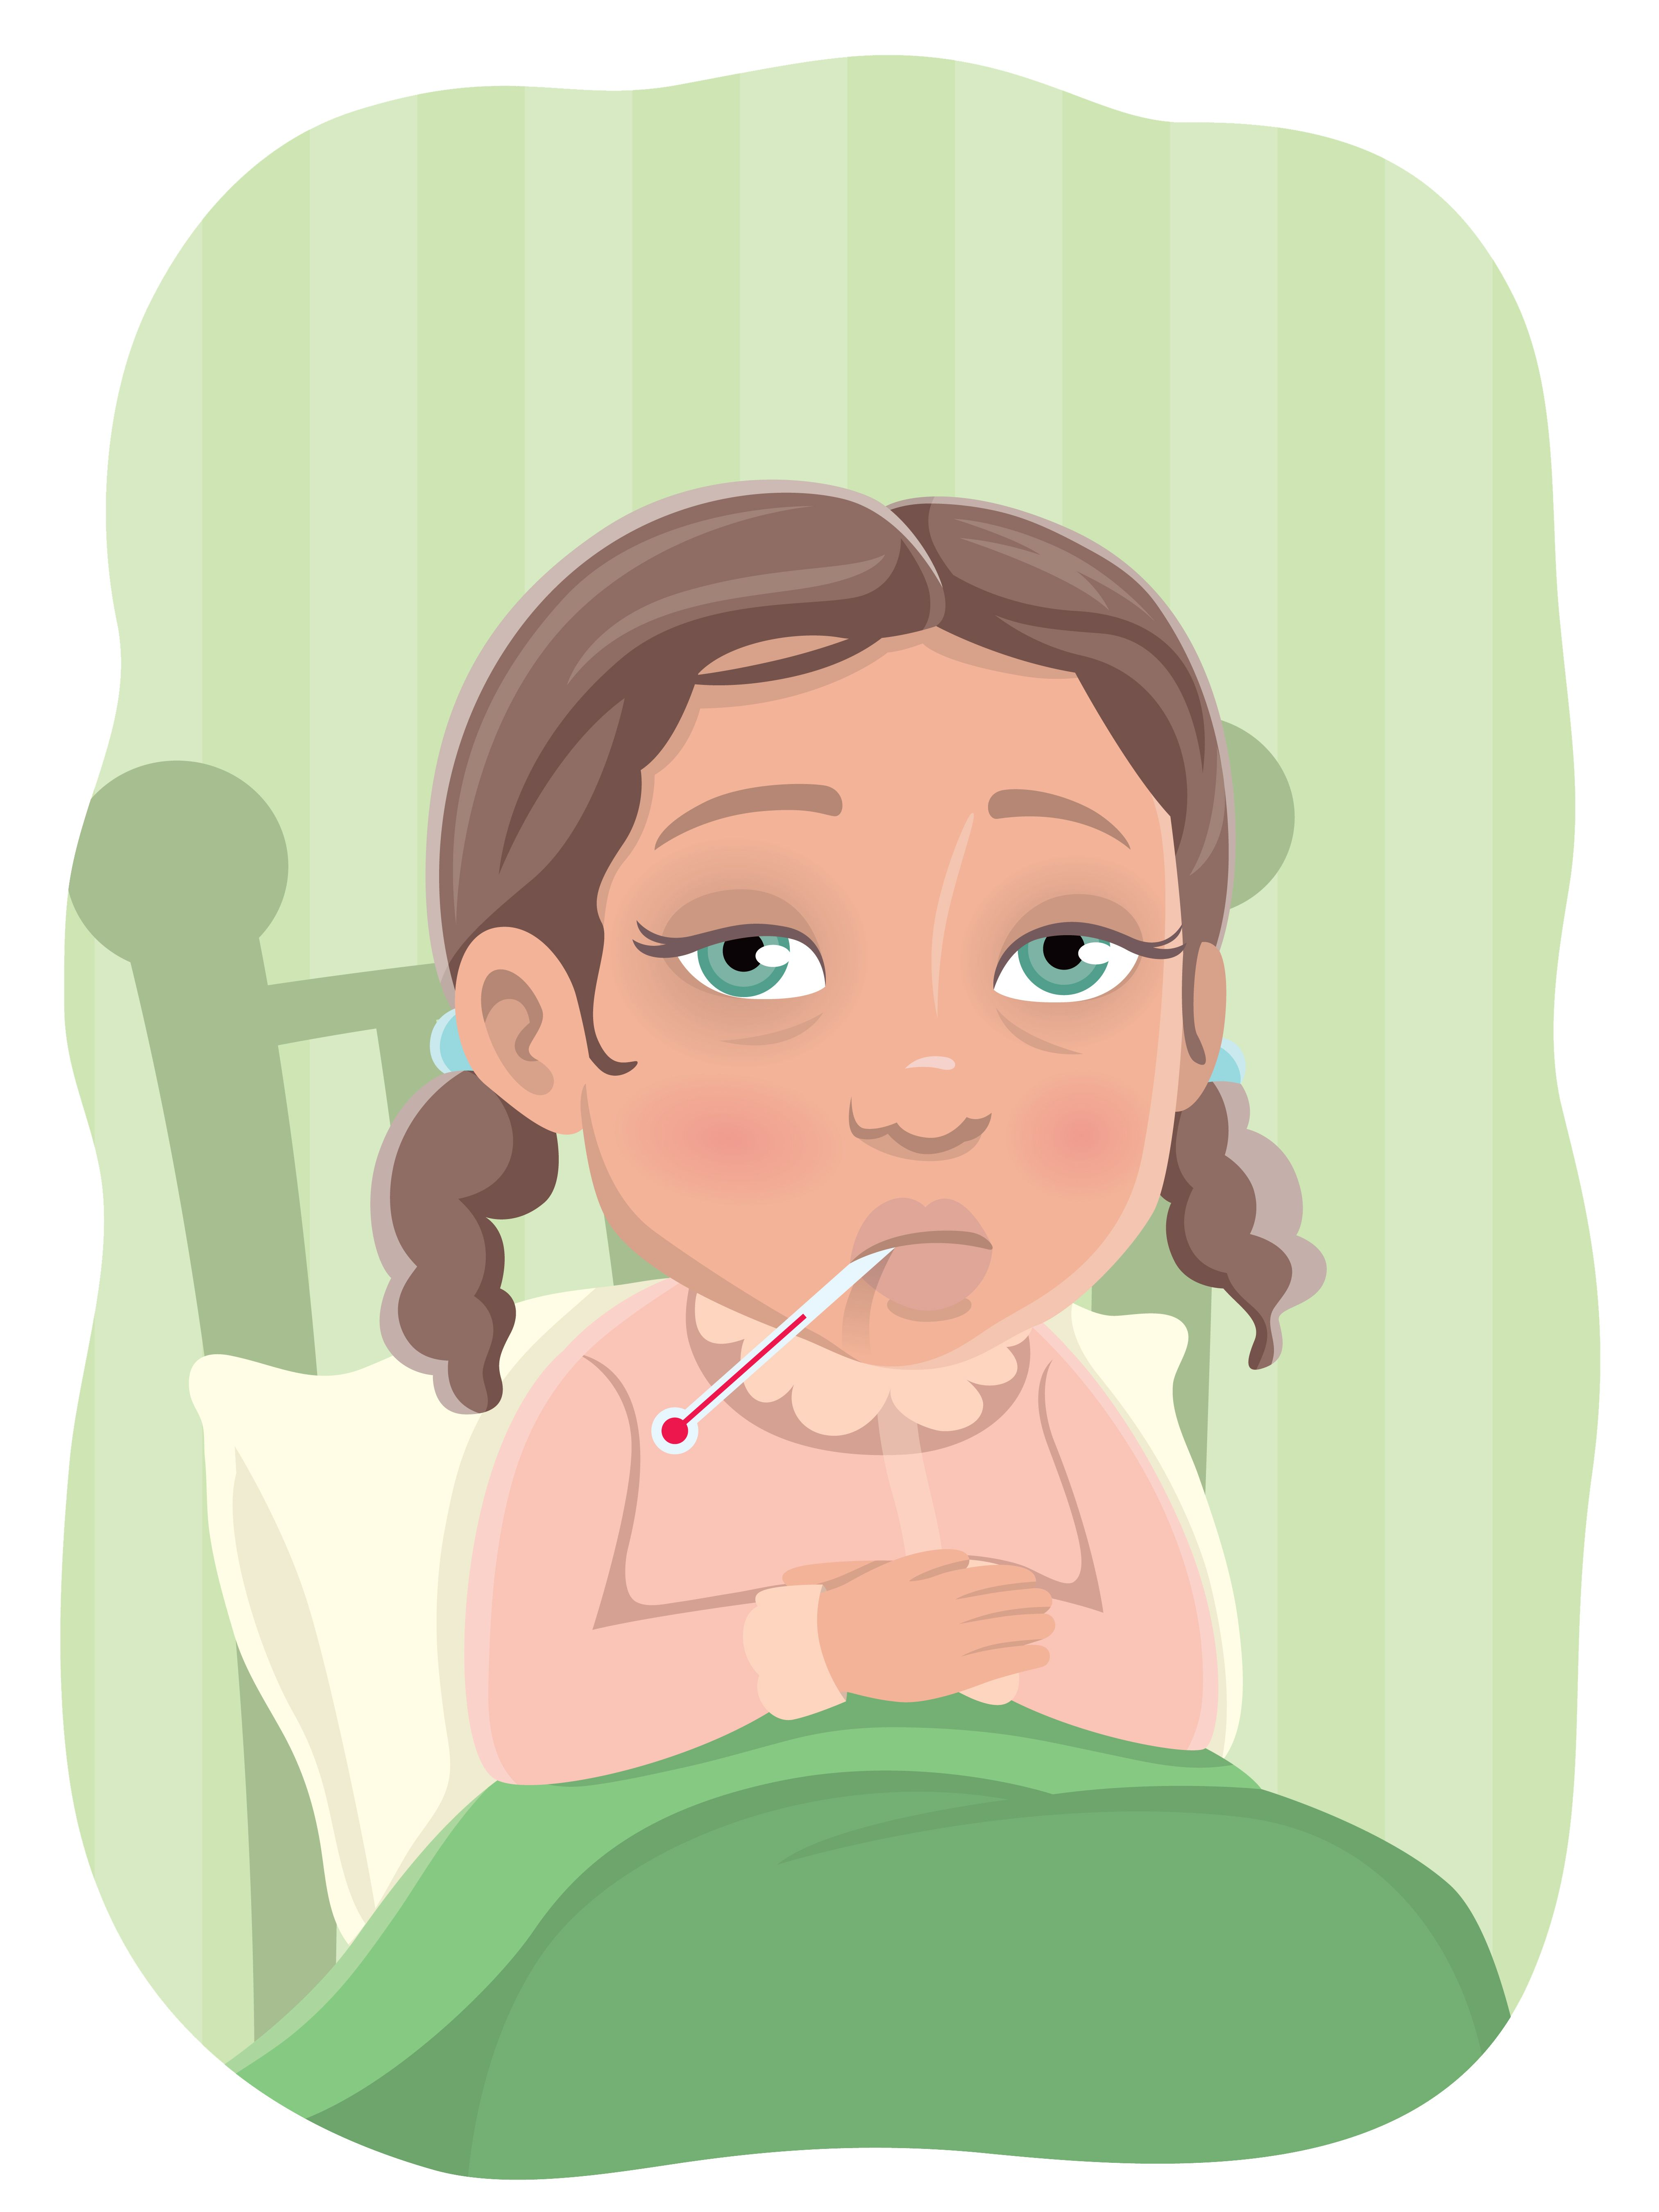 If your child has a runny nose and a bit of a cough, is it okay to send him or her to school?